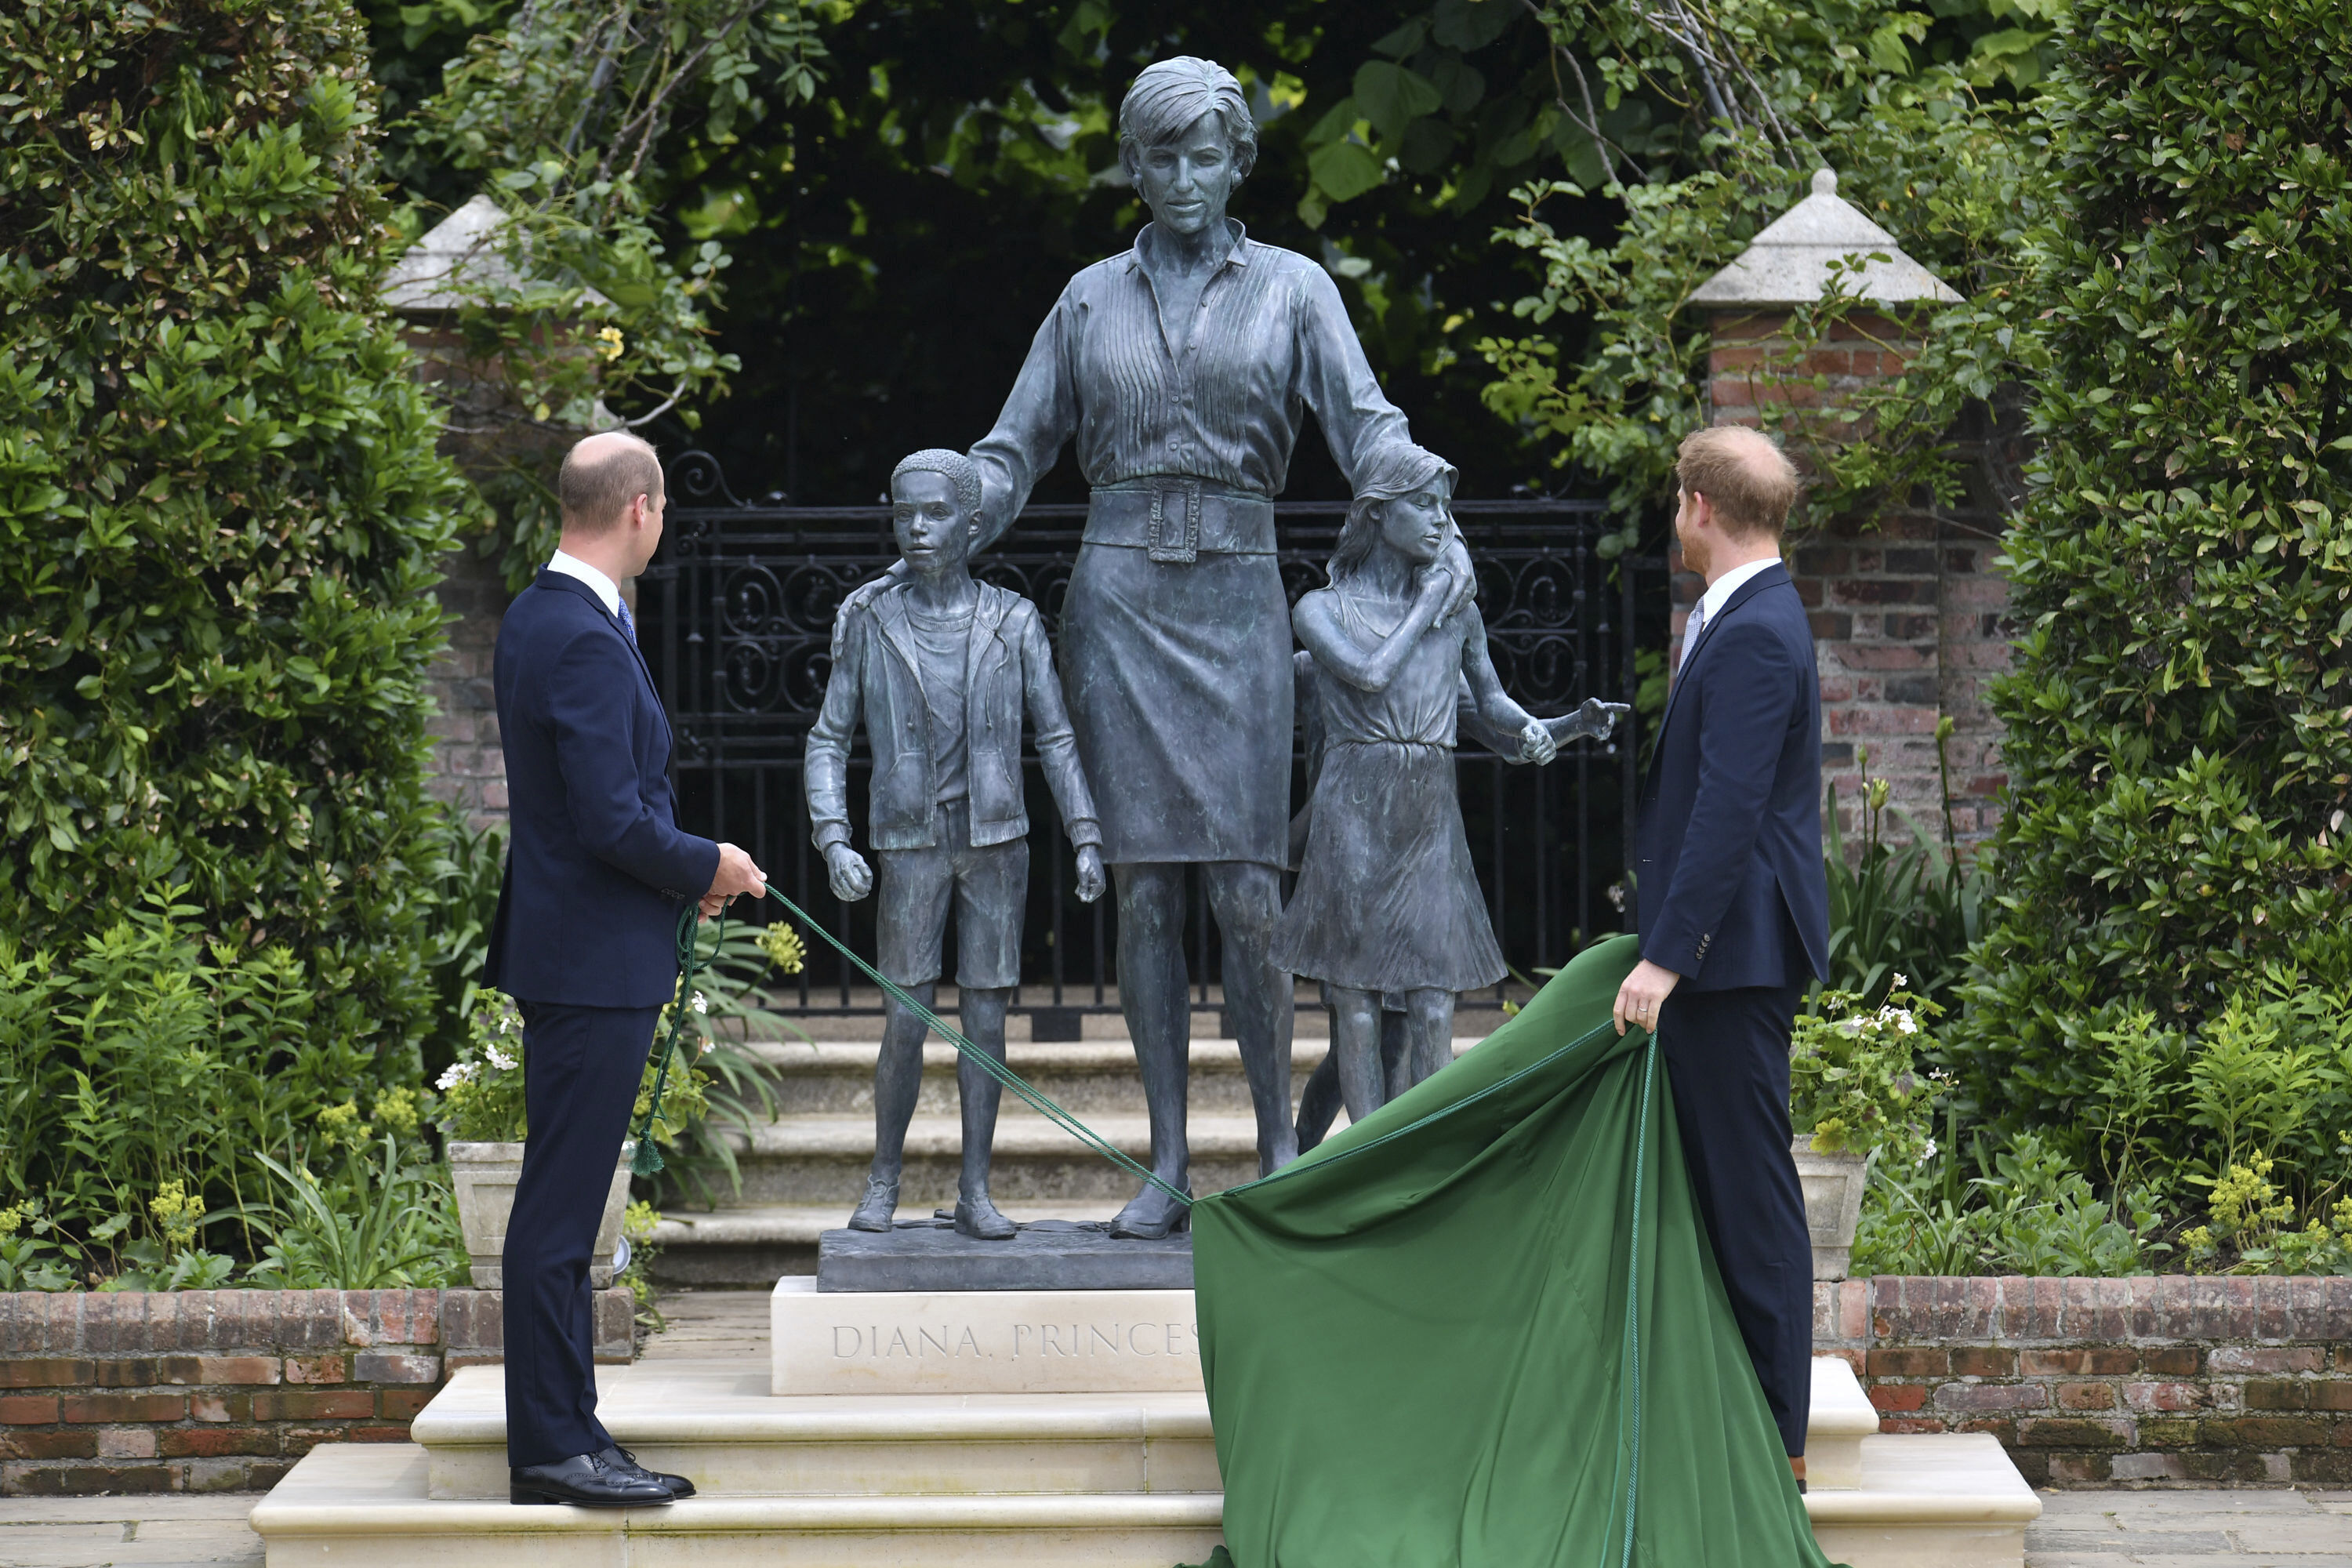 Britain's Prince William, left and Prince Harry unveil a statue they commissioned of their mother Princess Diana,  on what woud have been her 60th birthday, in the Sunken Garden at Kensington Palace, London, Thursday July 1, 2021.